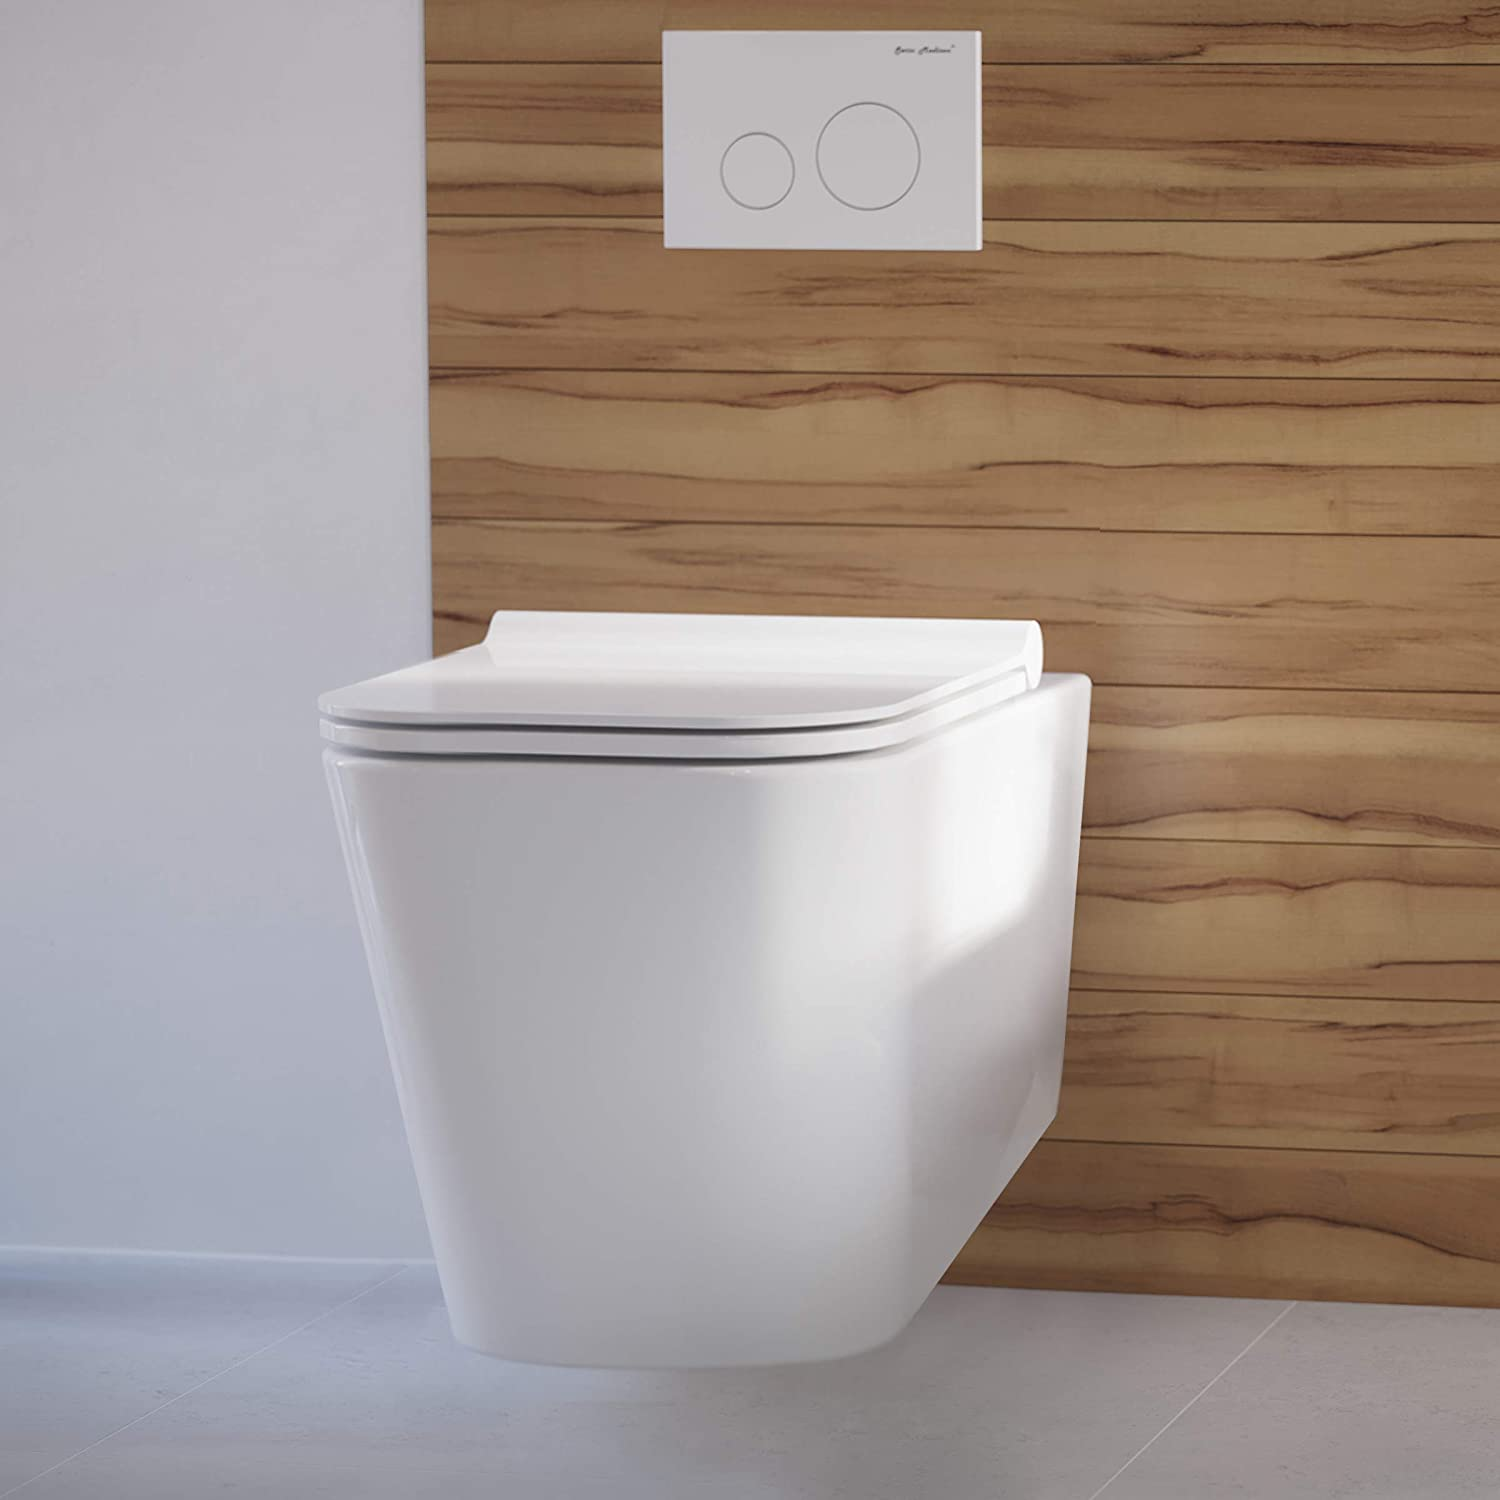 toilet types: wall hung toilet